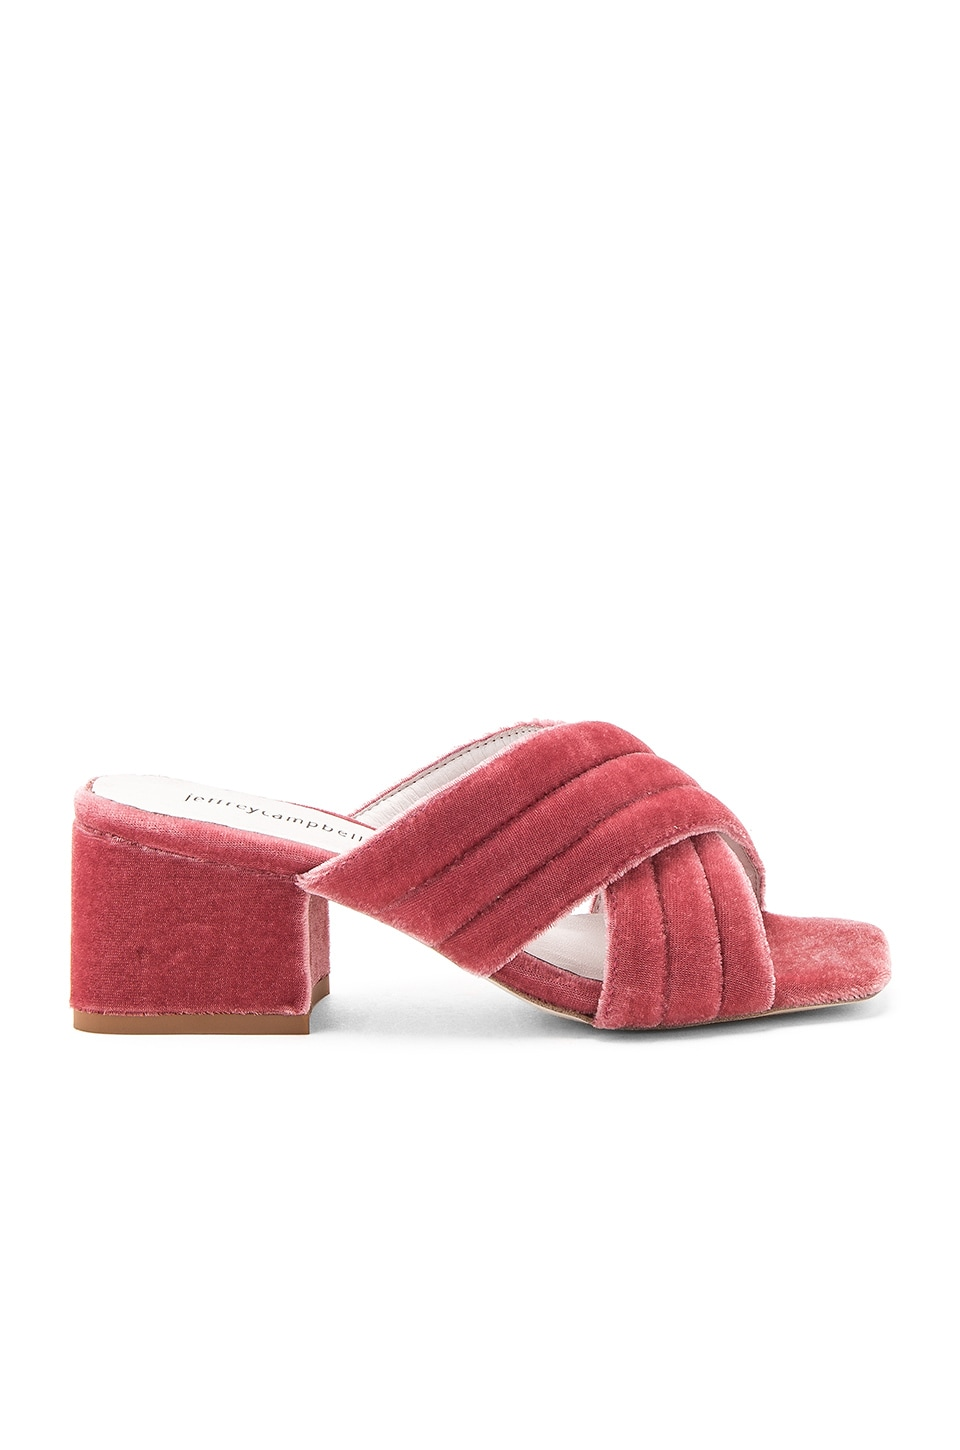 Jeffrey Campbell Berdine Heels in Rose Velvet